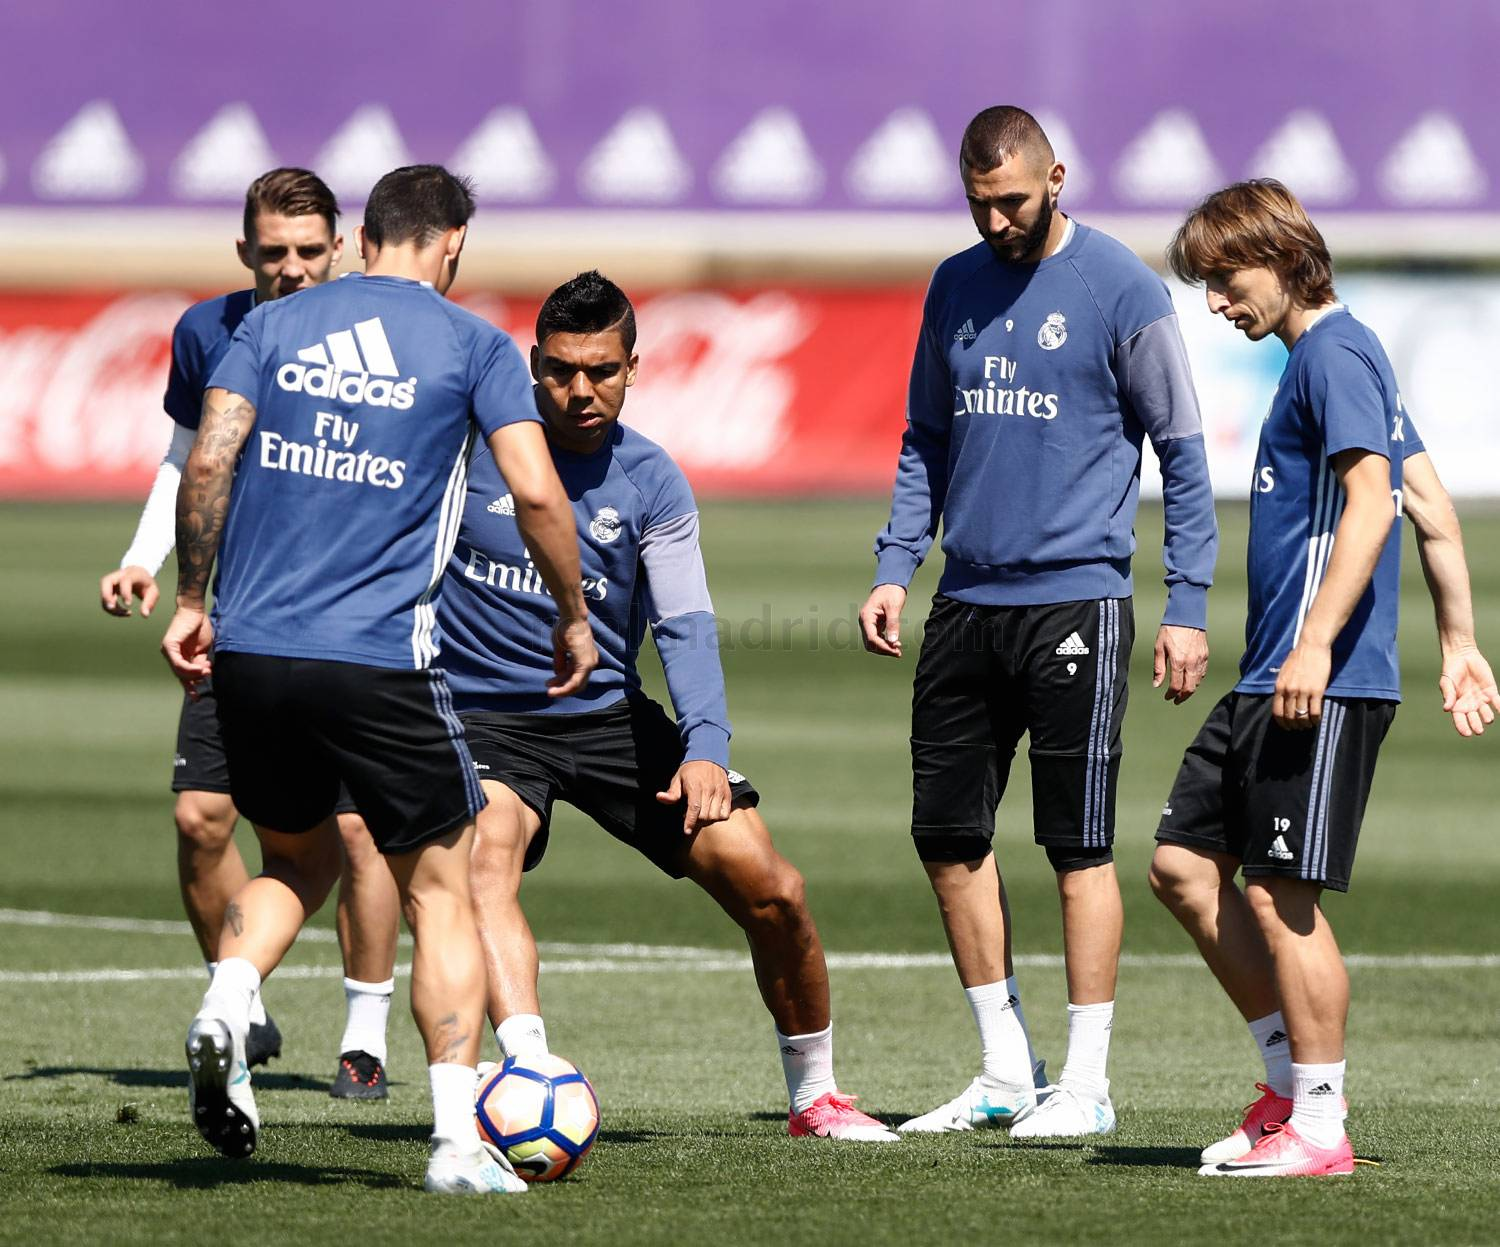 Real Madrid - Entrenamiento del Real Madrid - 19-05-2017